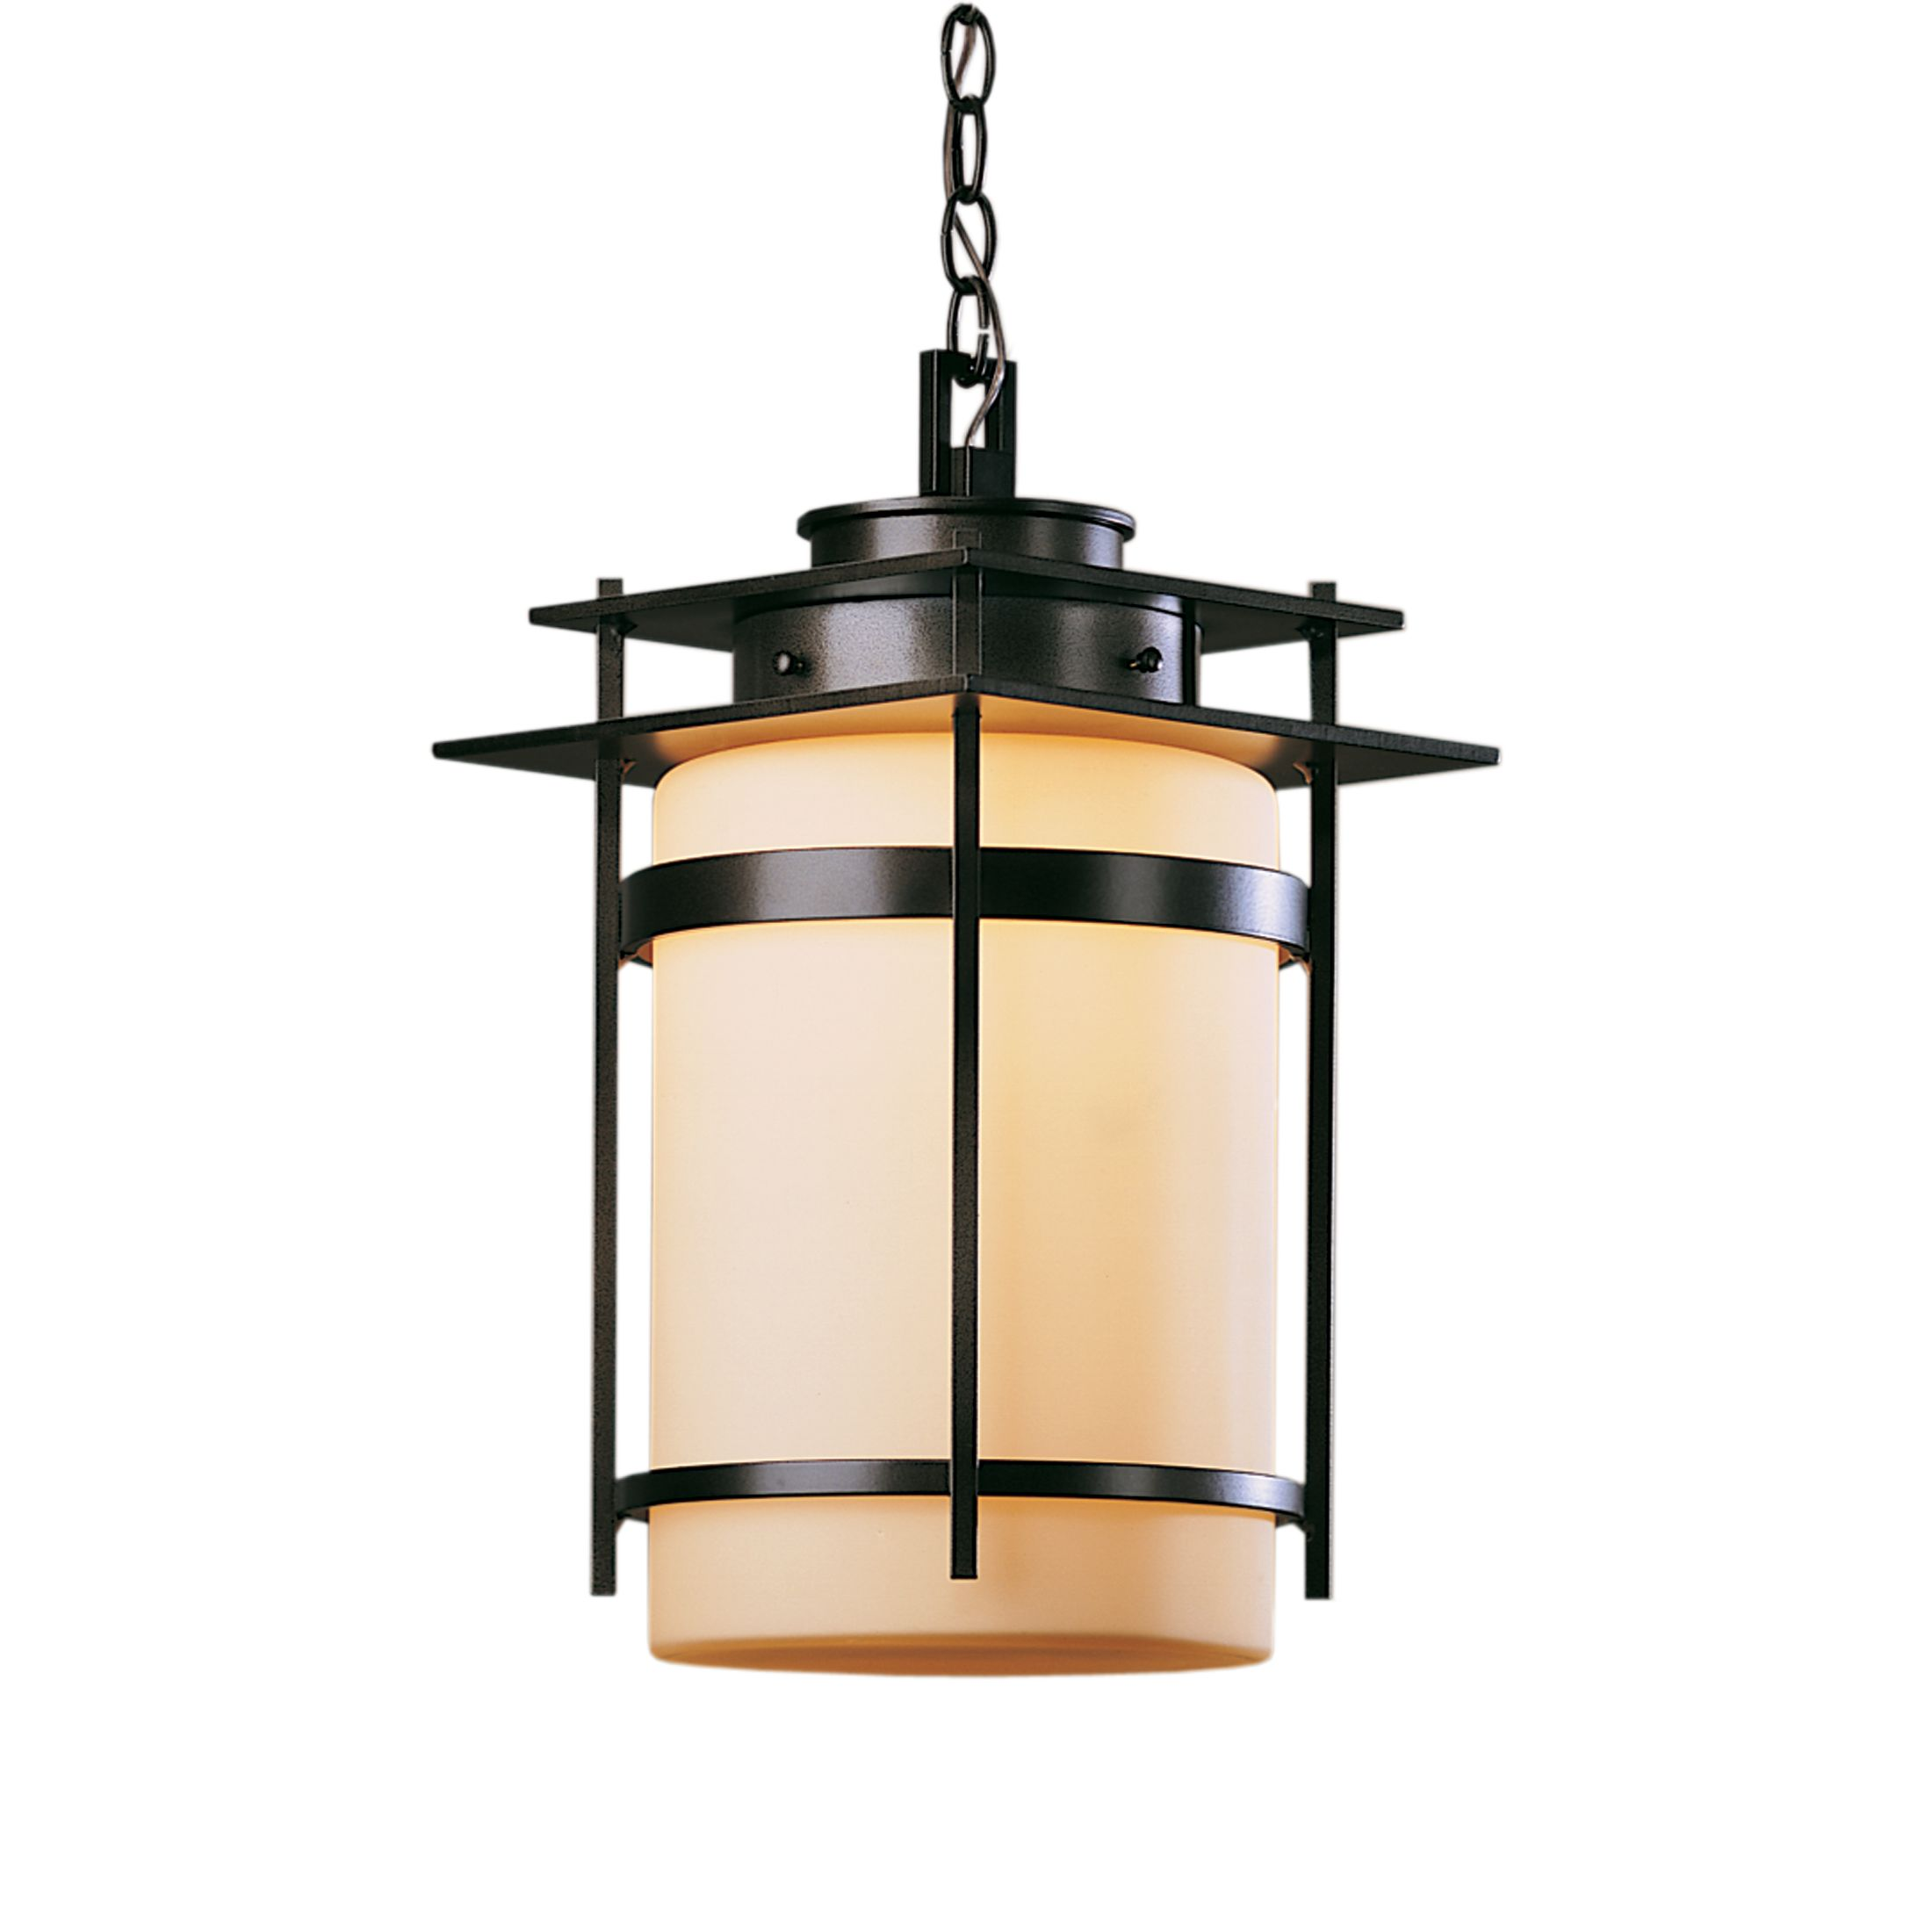 Hubbardton Forge Tourou: Banded With Top Plate Outdoor Sconce